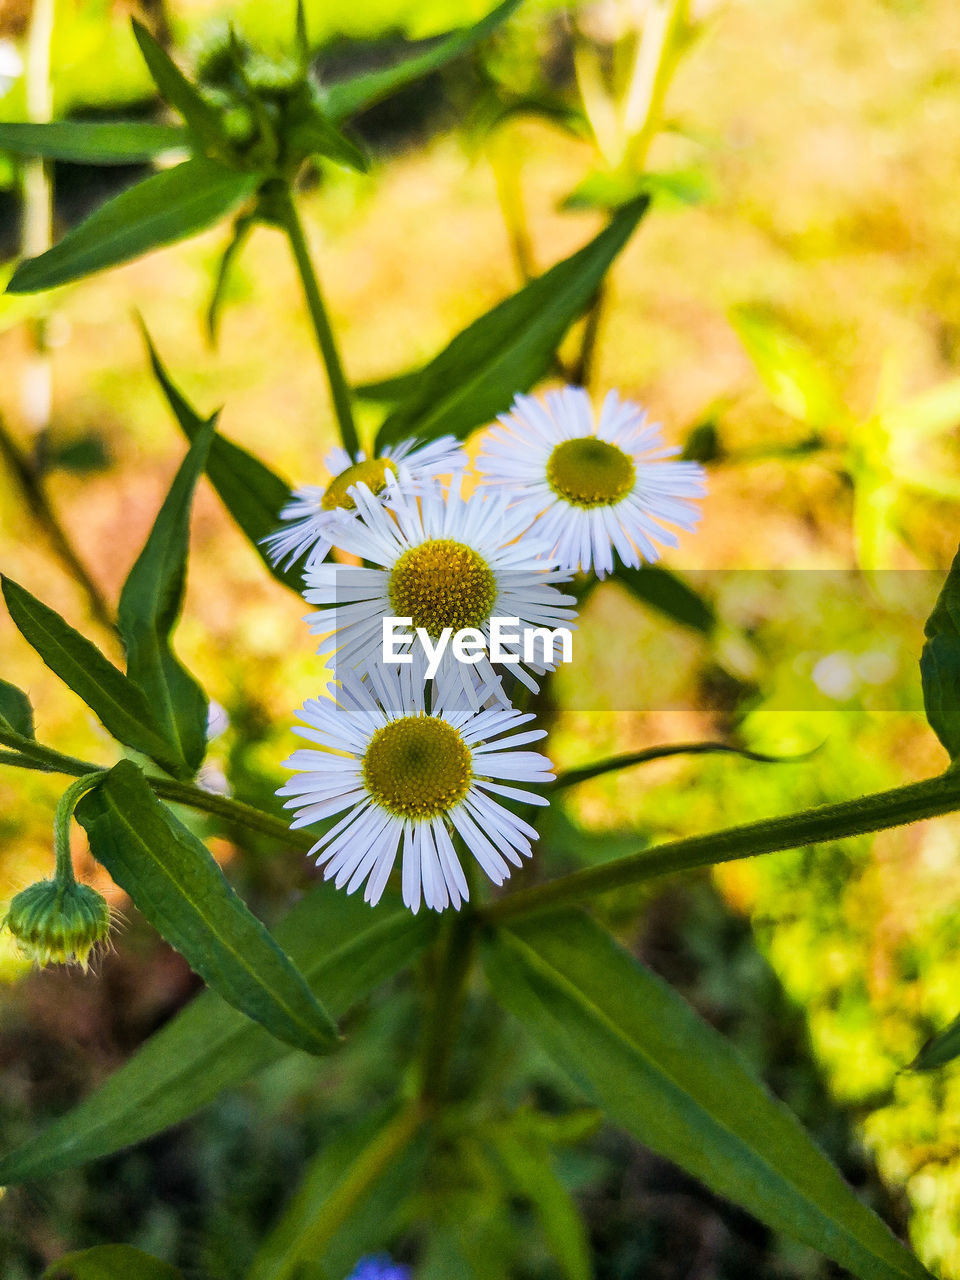 flower, flowering plant, plant, fragility, freshness, vulnerability, growth, beauty in nature, petal, close-up, inflorescence, flower head, nature, focus on foreground, no people, day, yellow, botany, pollen, selective focus, outdoors